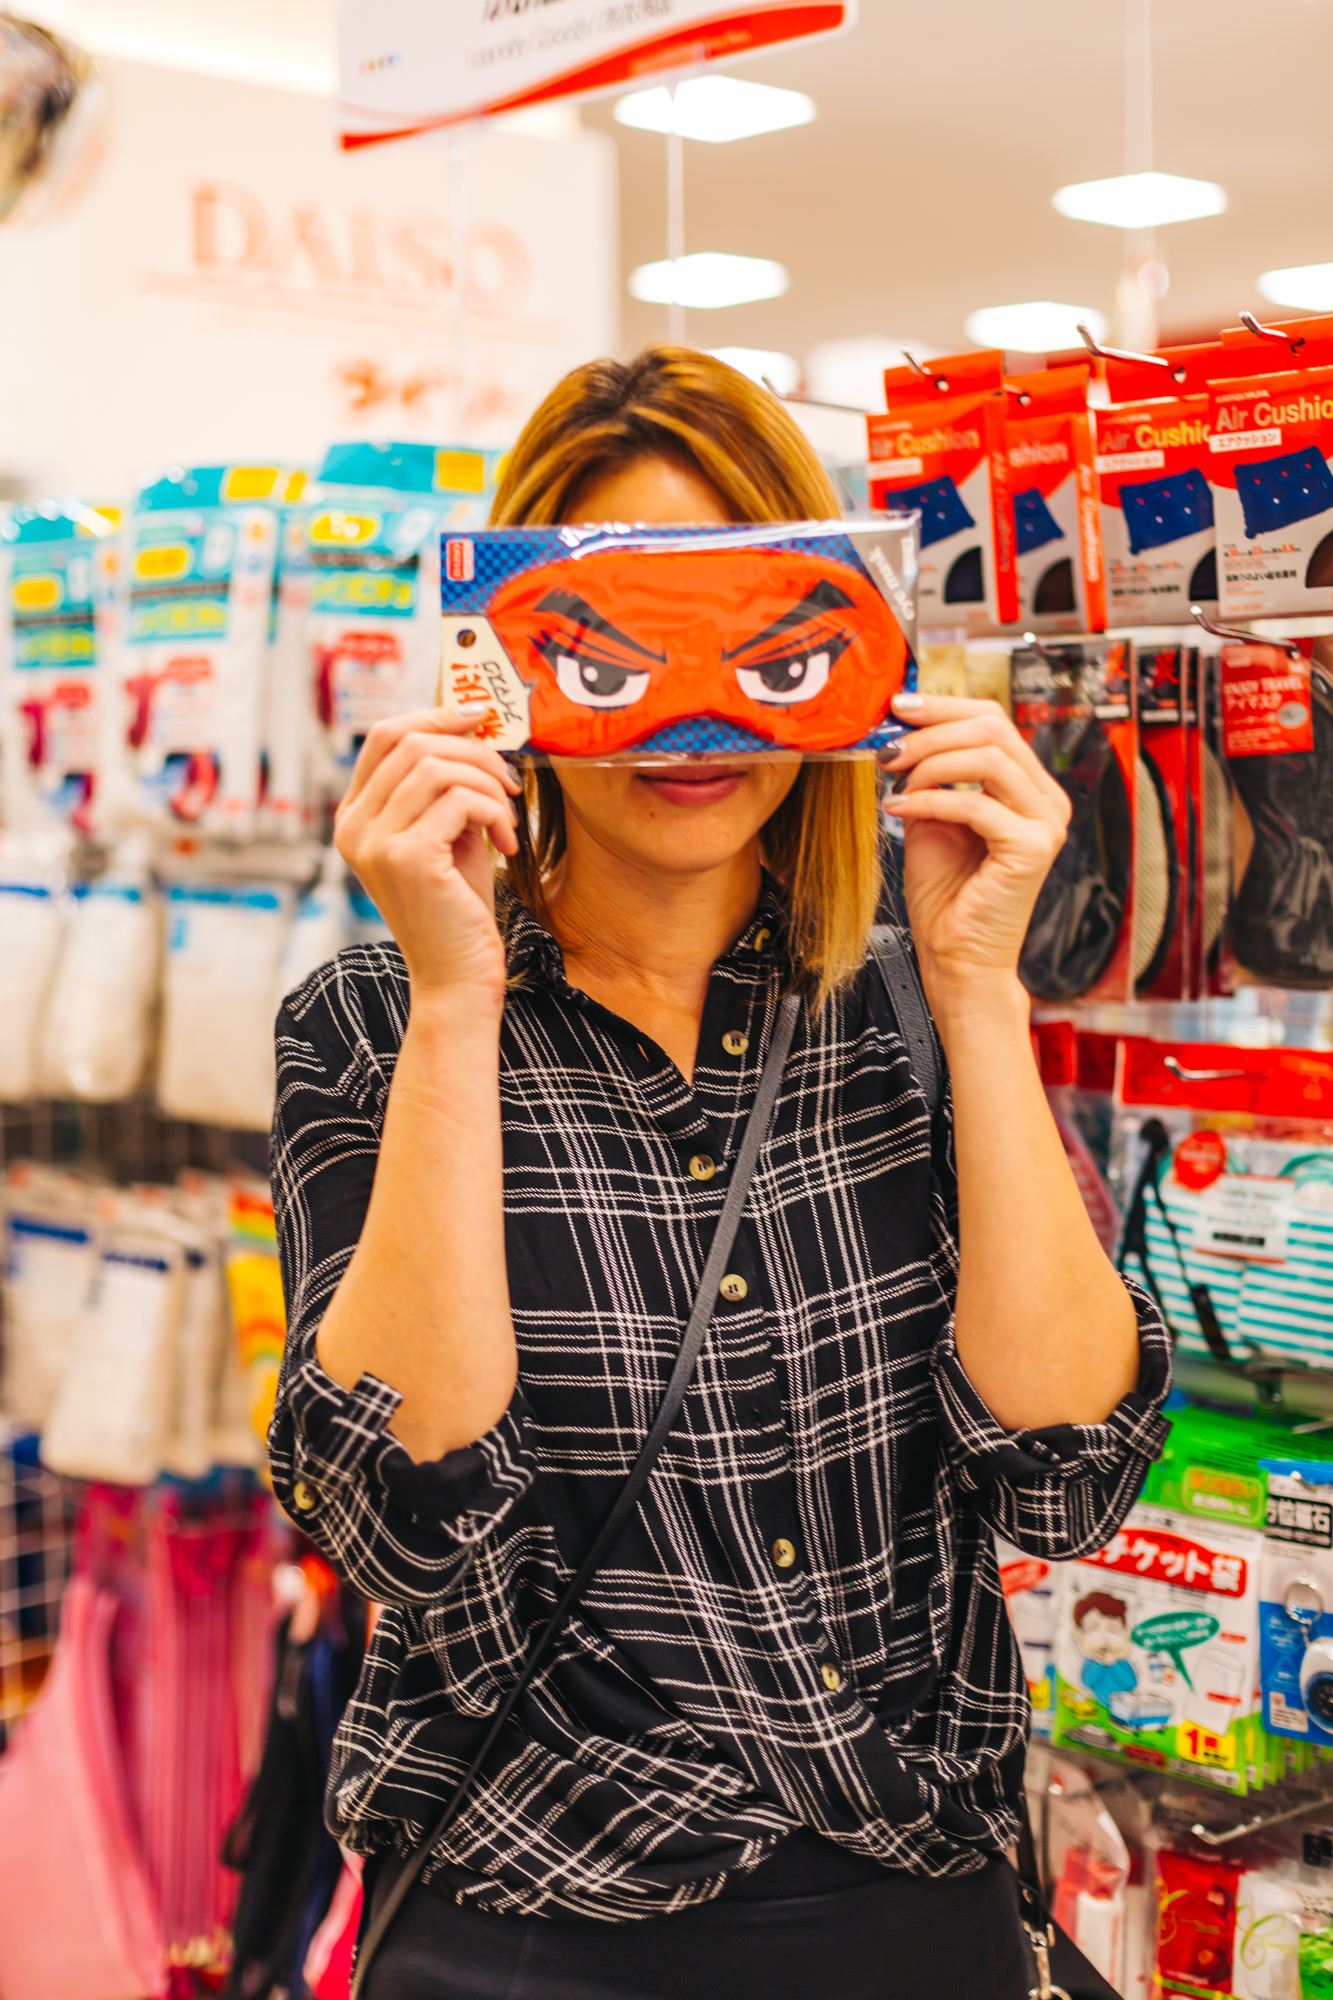 Fun anime eye masks - great for gifts!